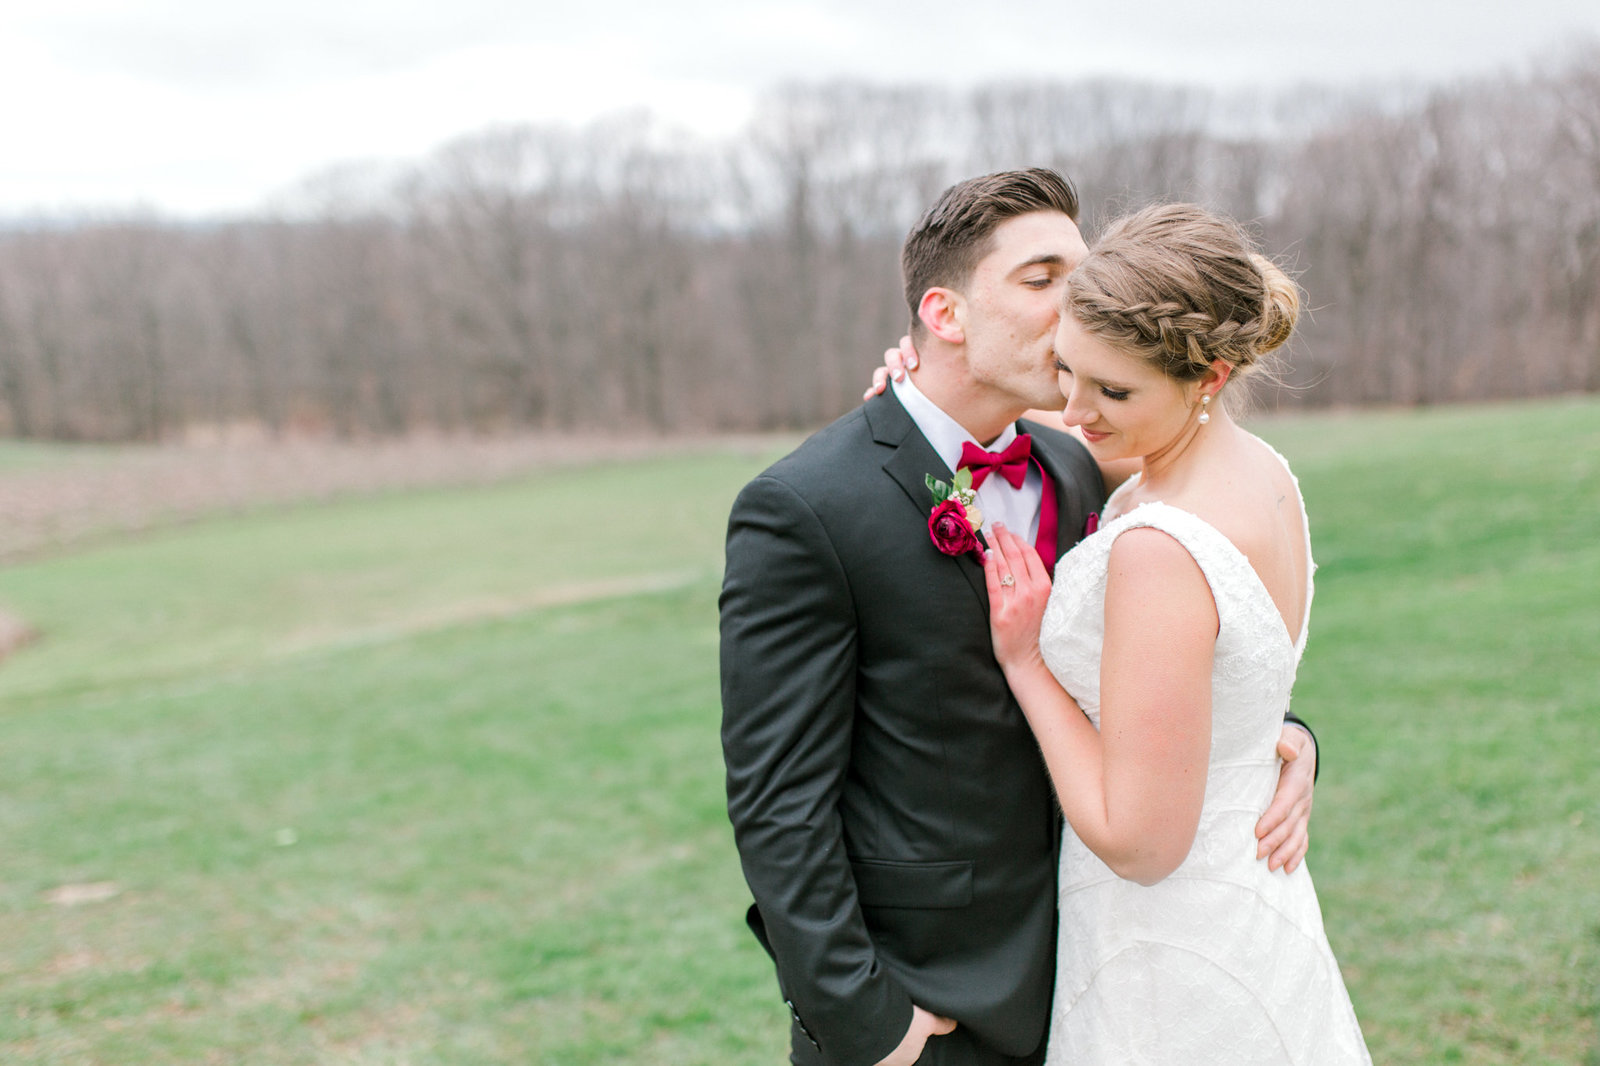 cleveland wedding photographers Austin and rachel -8491